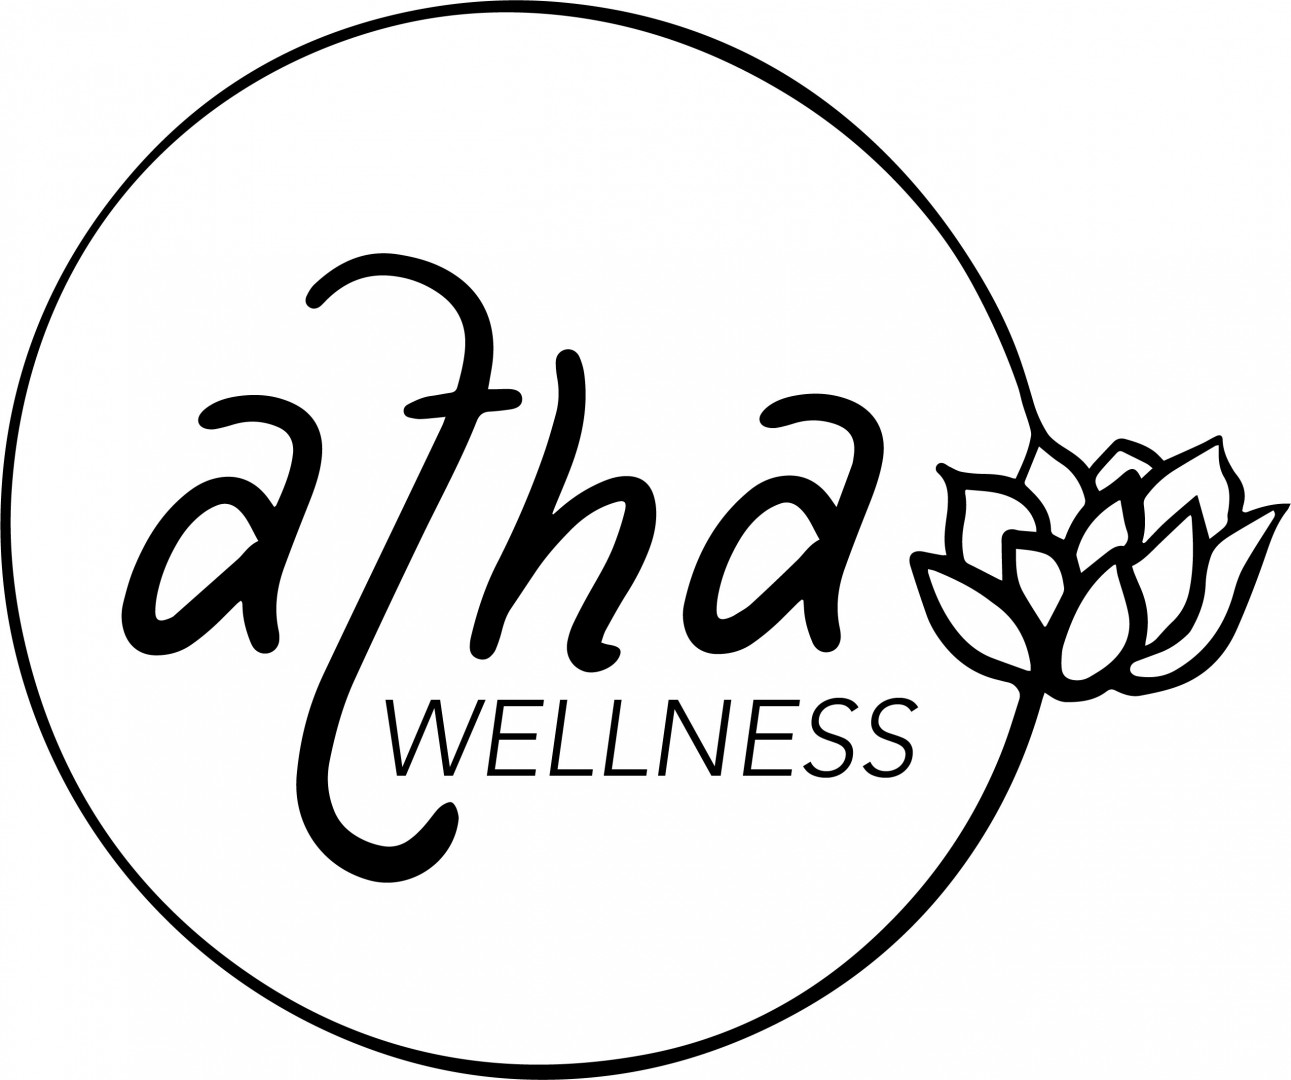 Atha Wellness offers acupuncture and Chinese medicine in Kirkland, WA, specializing in dermatology and women's health